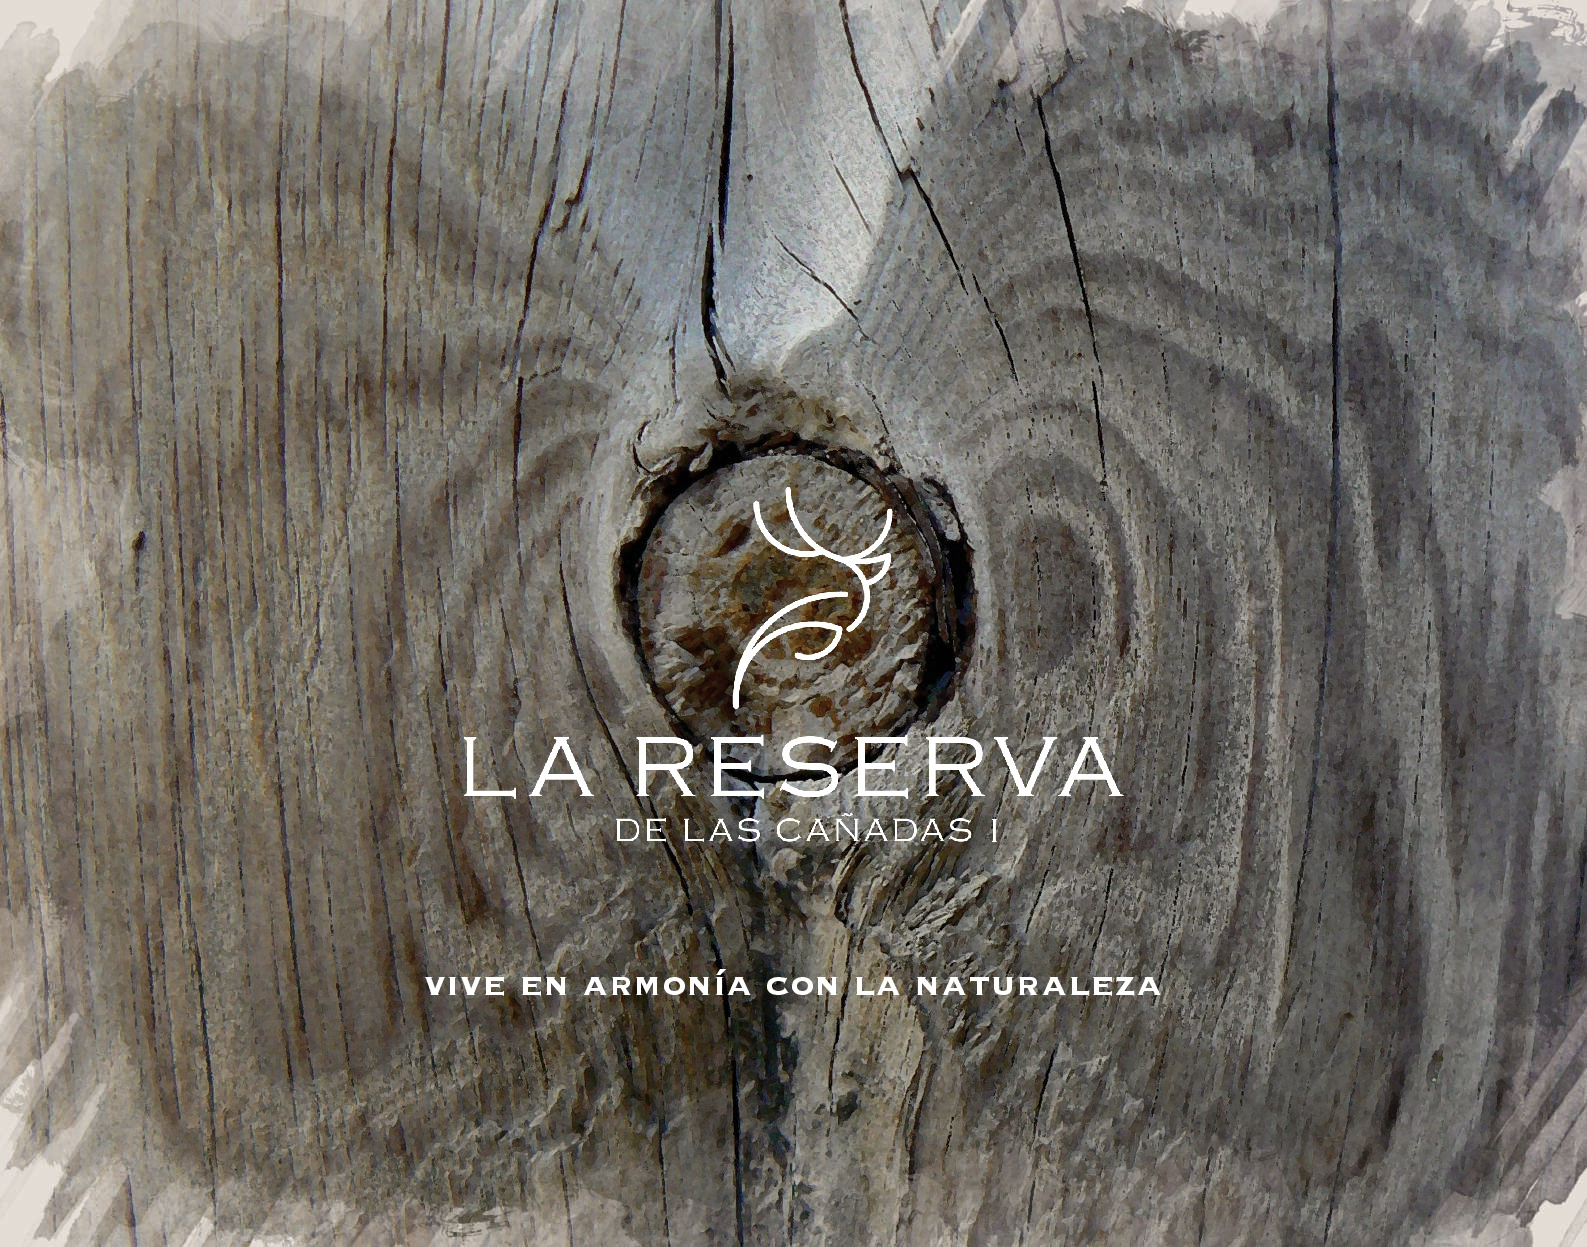 Carpeta-de-Ventas-La-reserva_REVIEW17-compressed-001.jpg